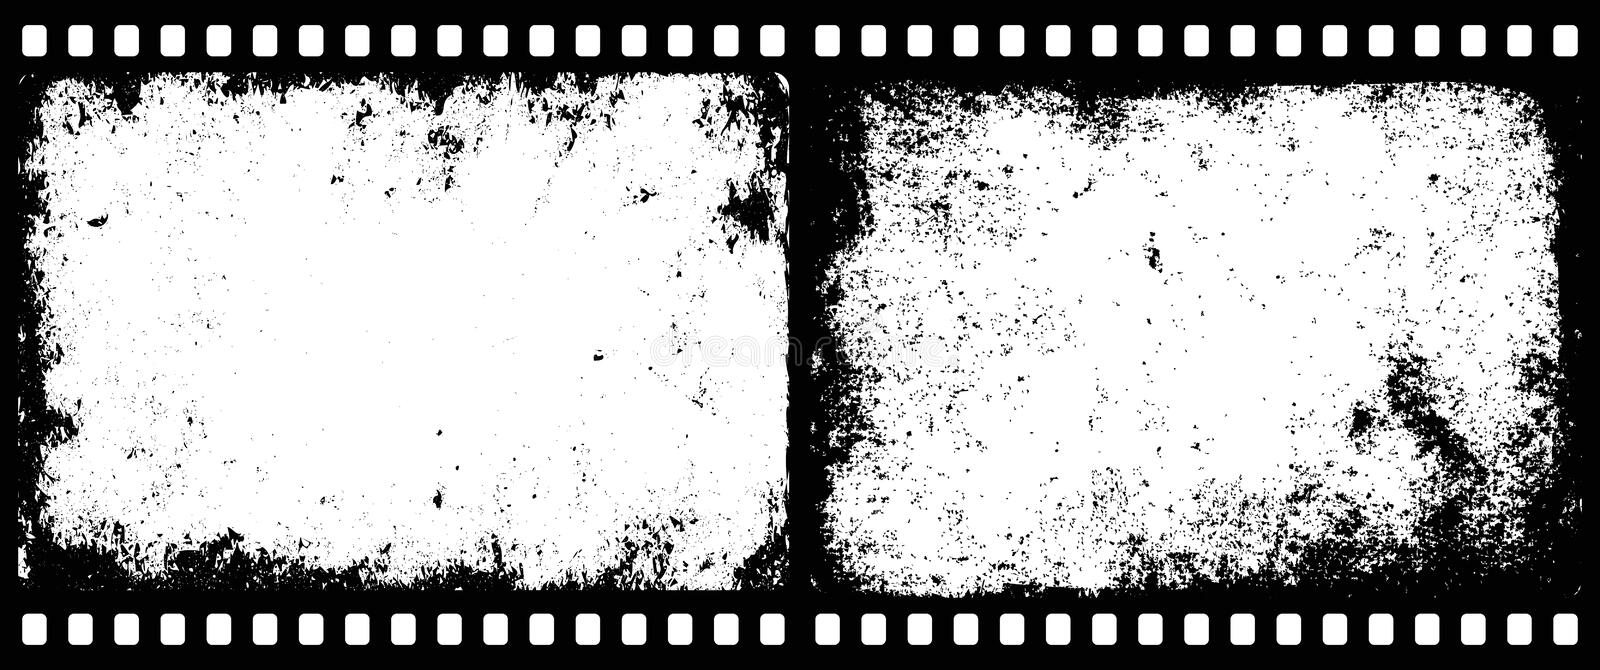 Film Frames Royalty Free Stock Images